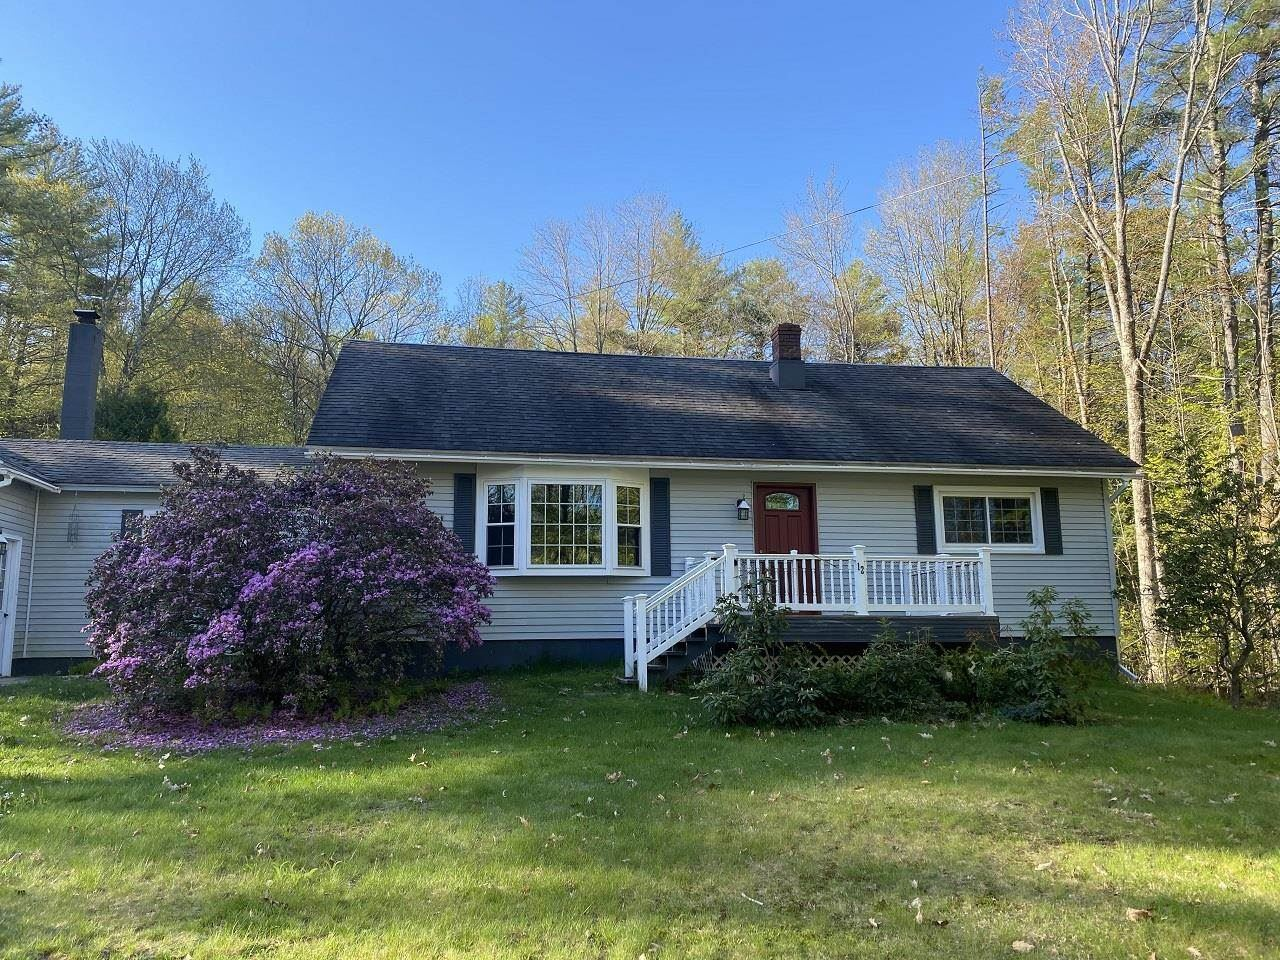 12 Jackson Hill Road, Chesterfield, NH 03443 - MLS#: 4860972